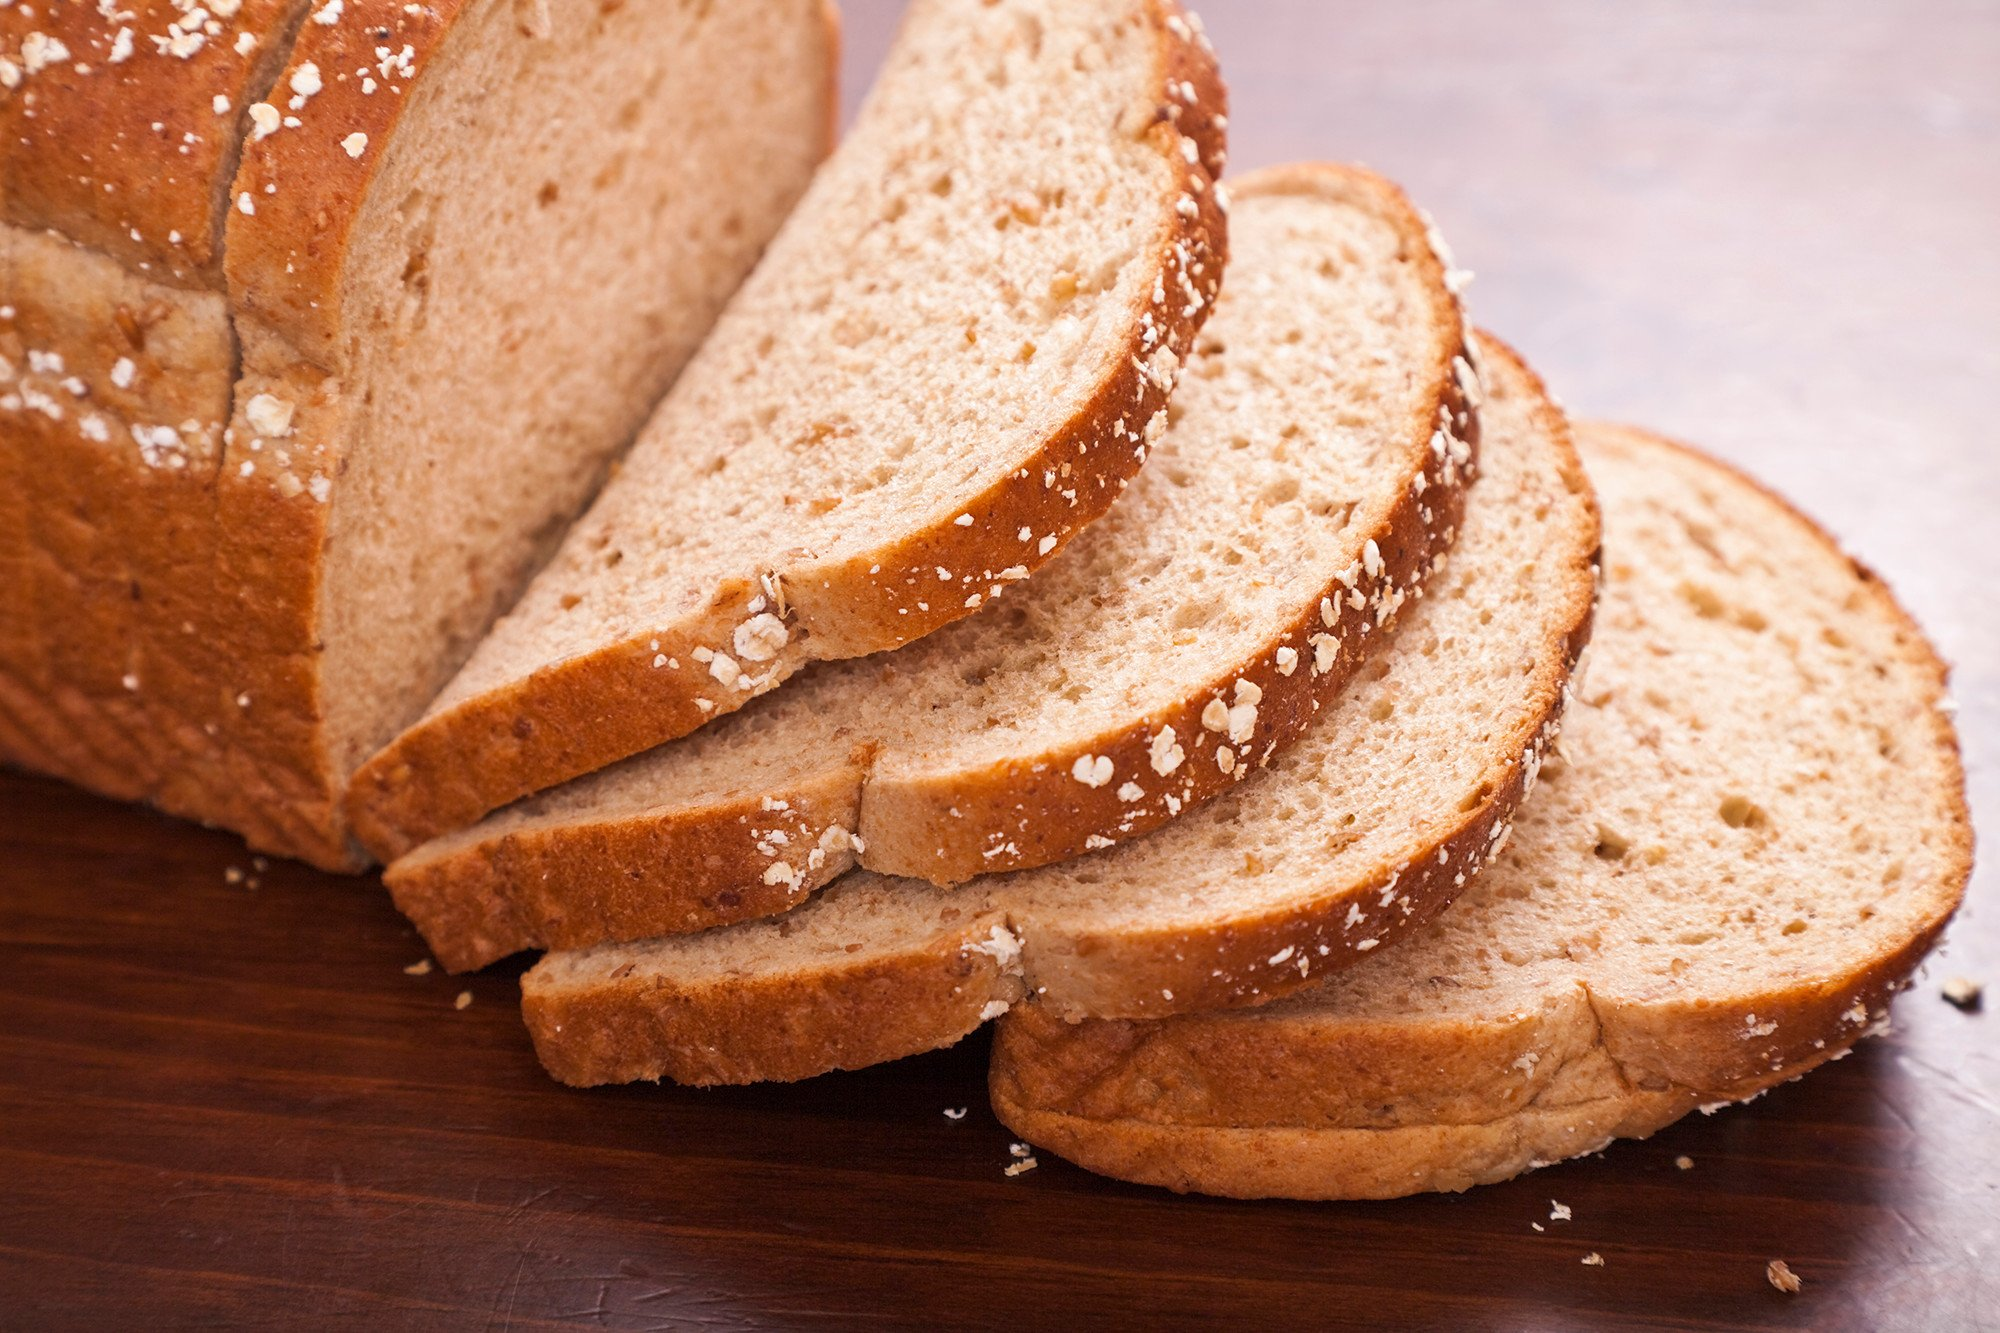 Missouri is considering an official day for sliced bread